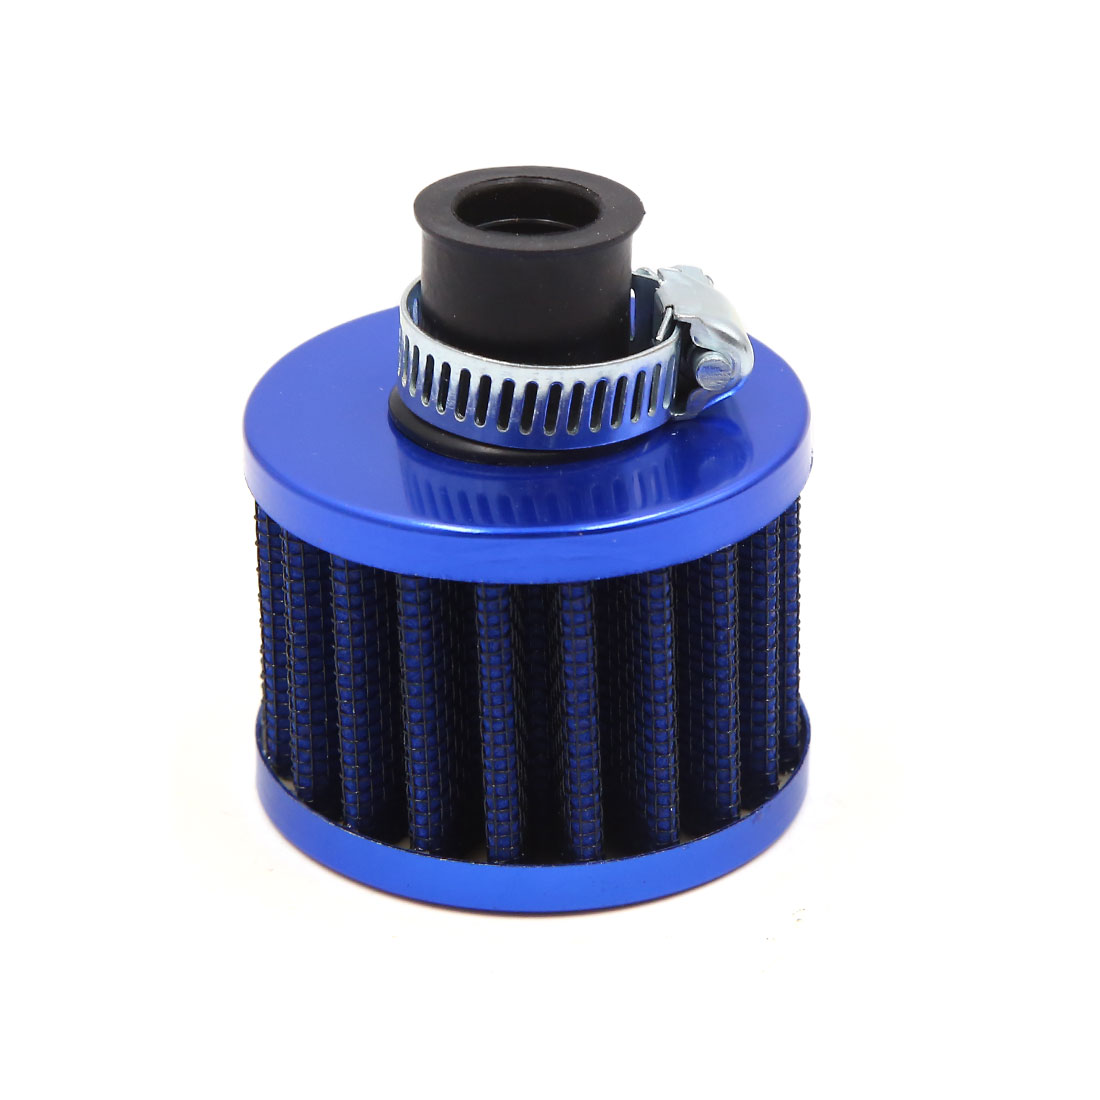 Blue 13mm Inlet Dia Car Vehicle Air Intake Filter Cleaner w Adjustable Clamp